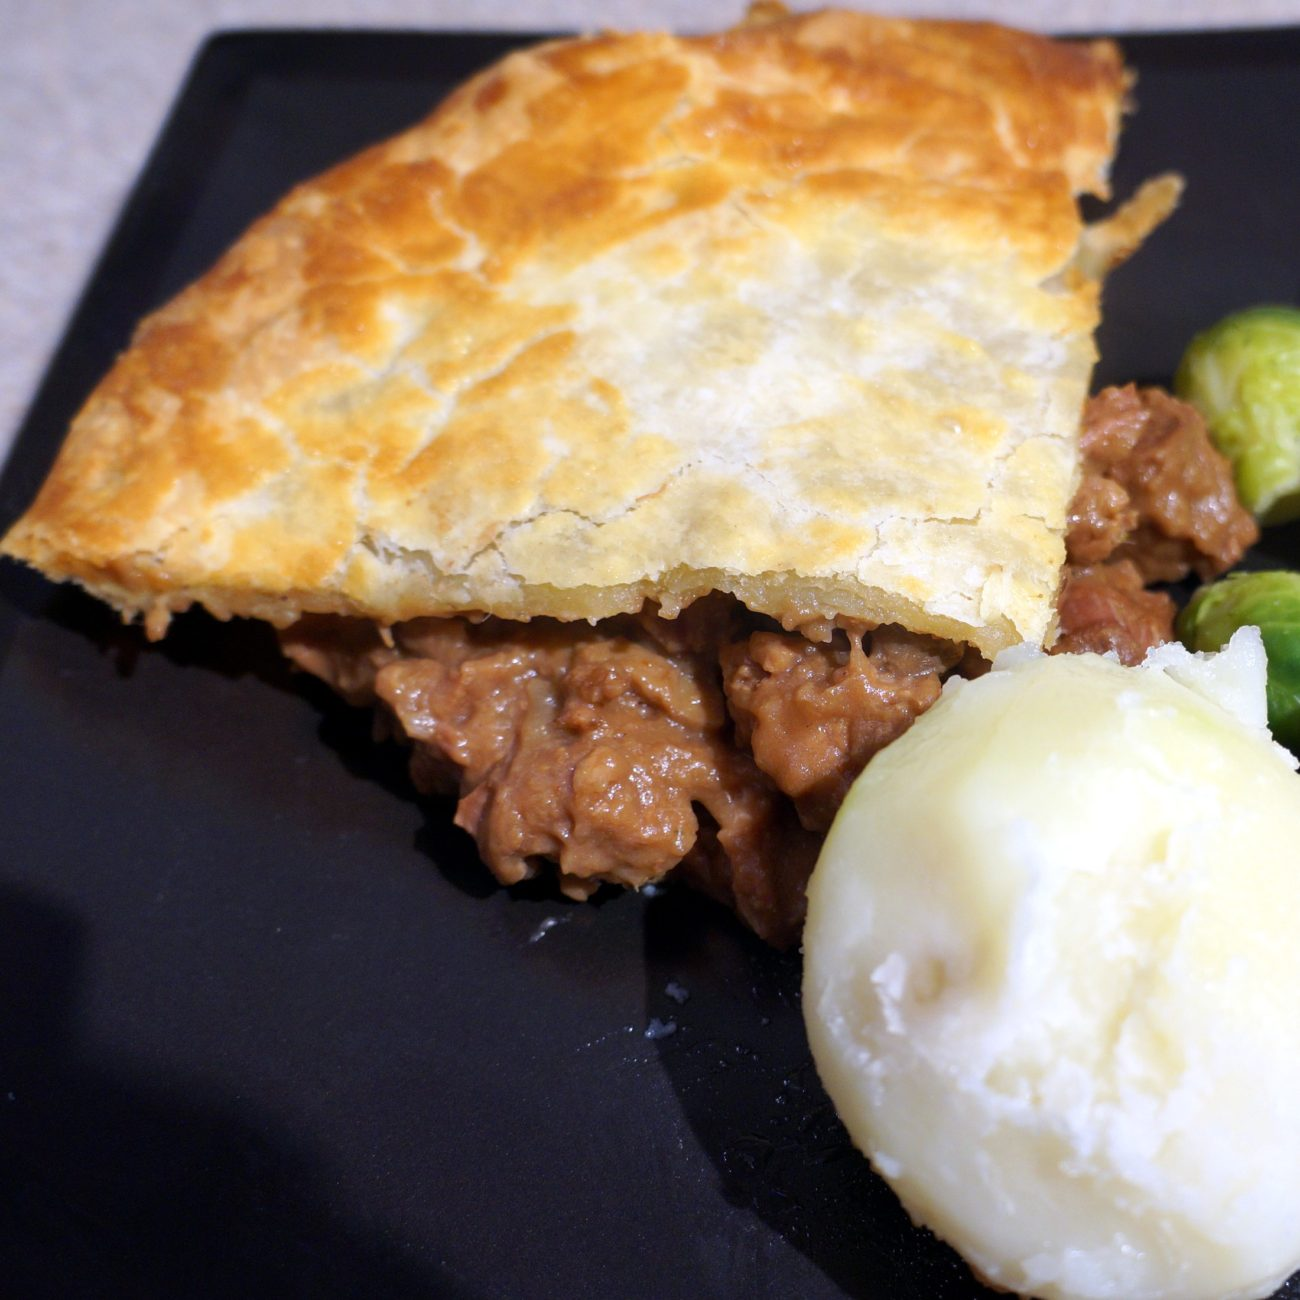 STEAK, MUSHROOM AND ALE PIE